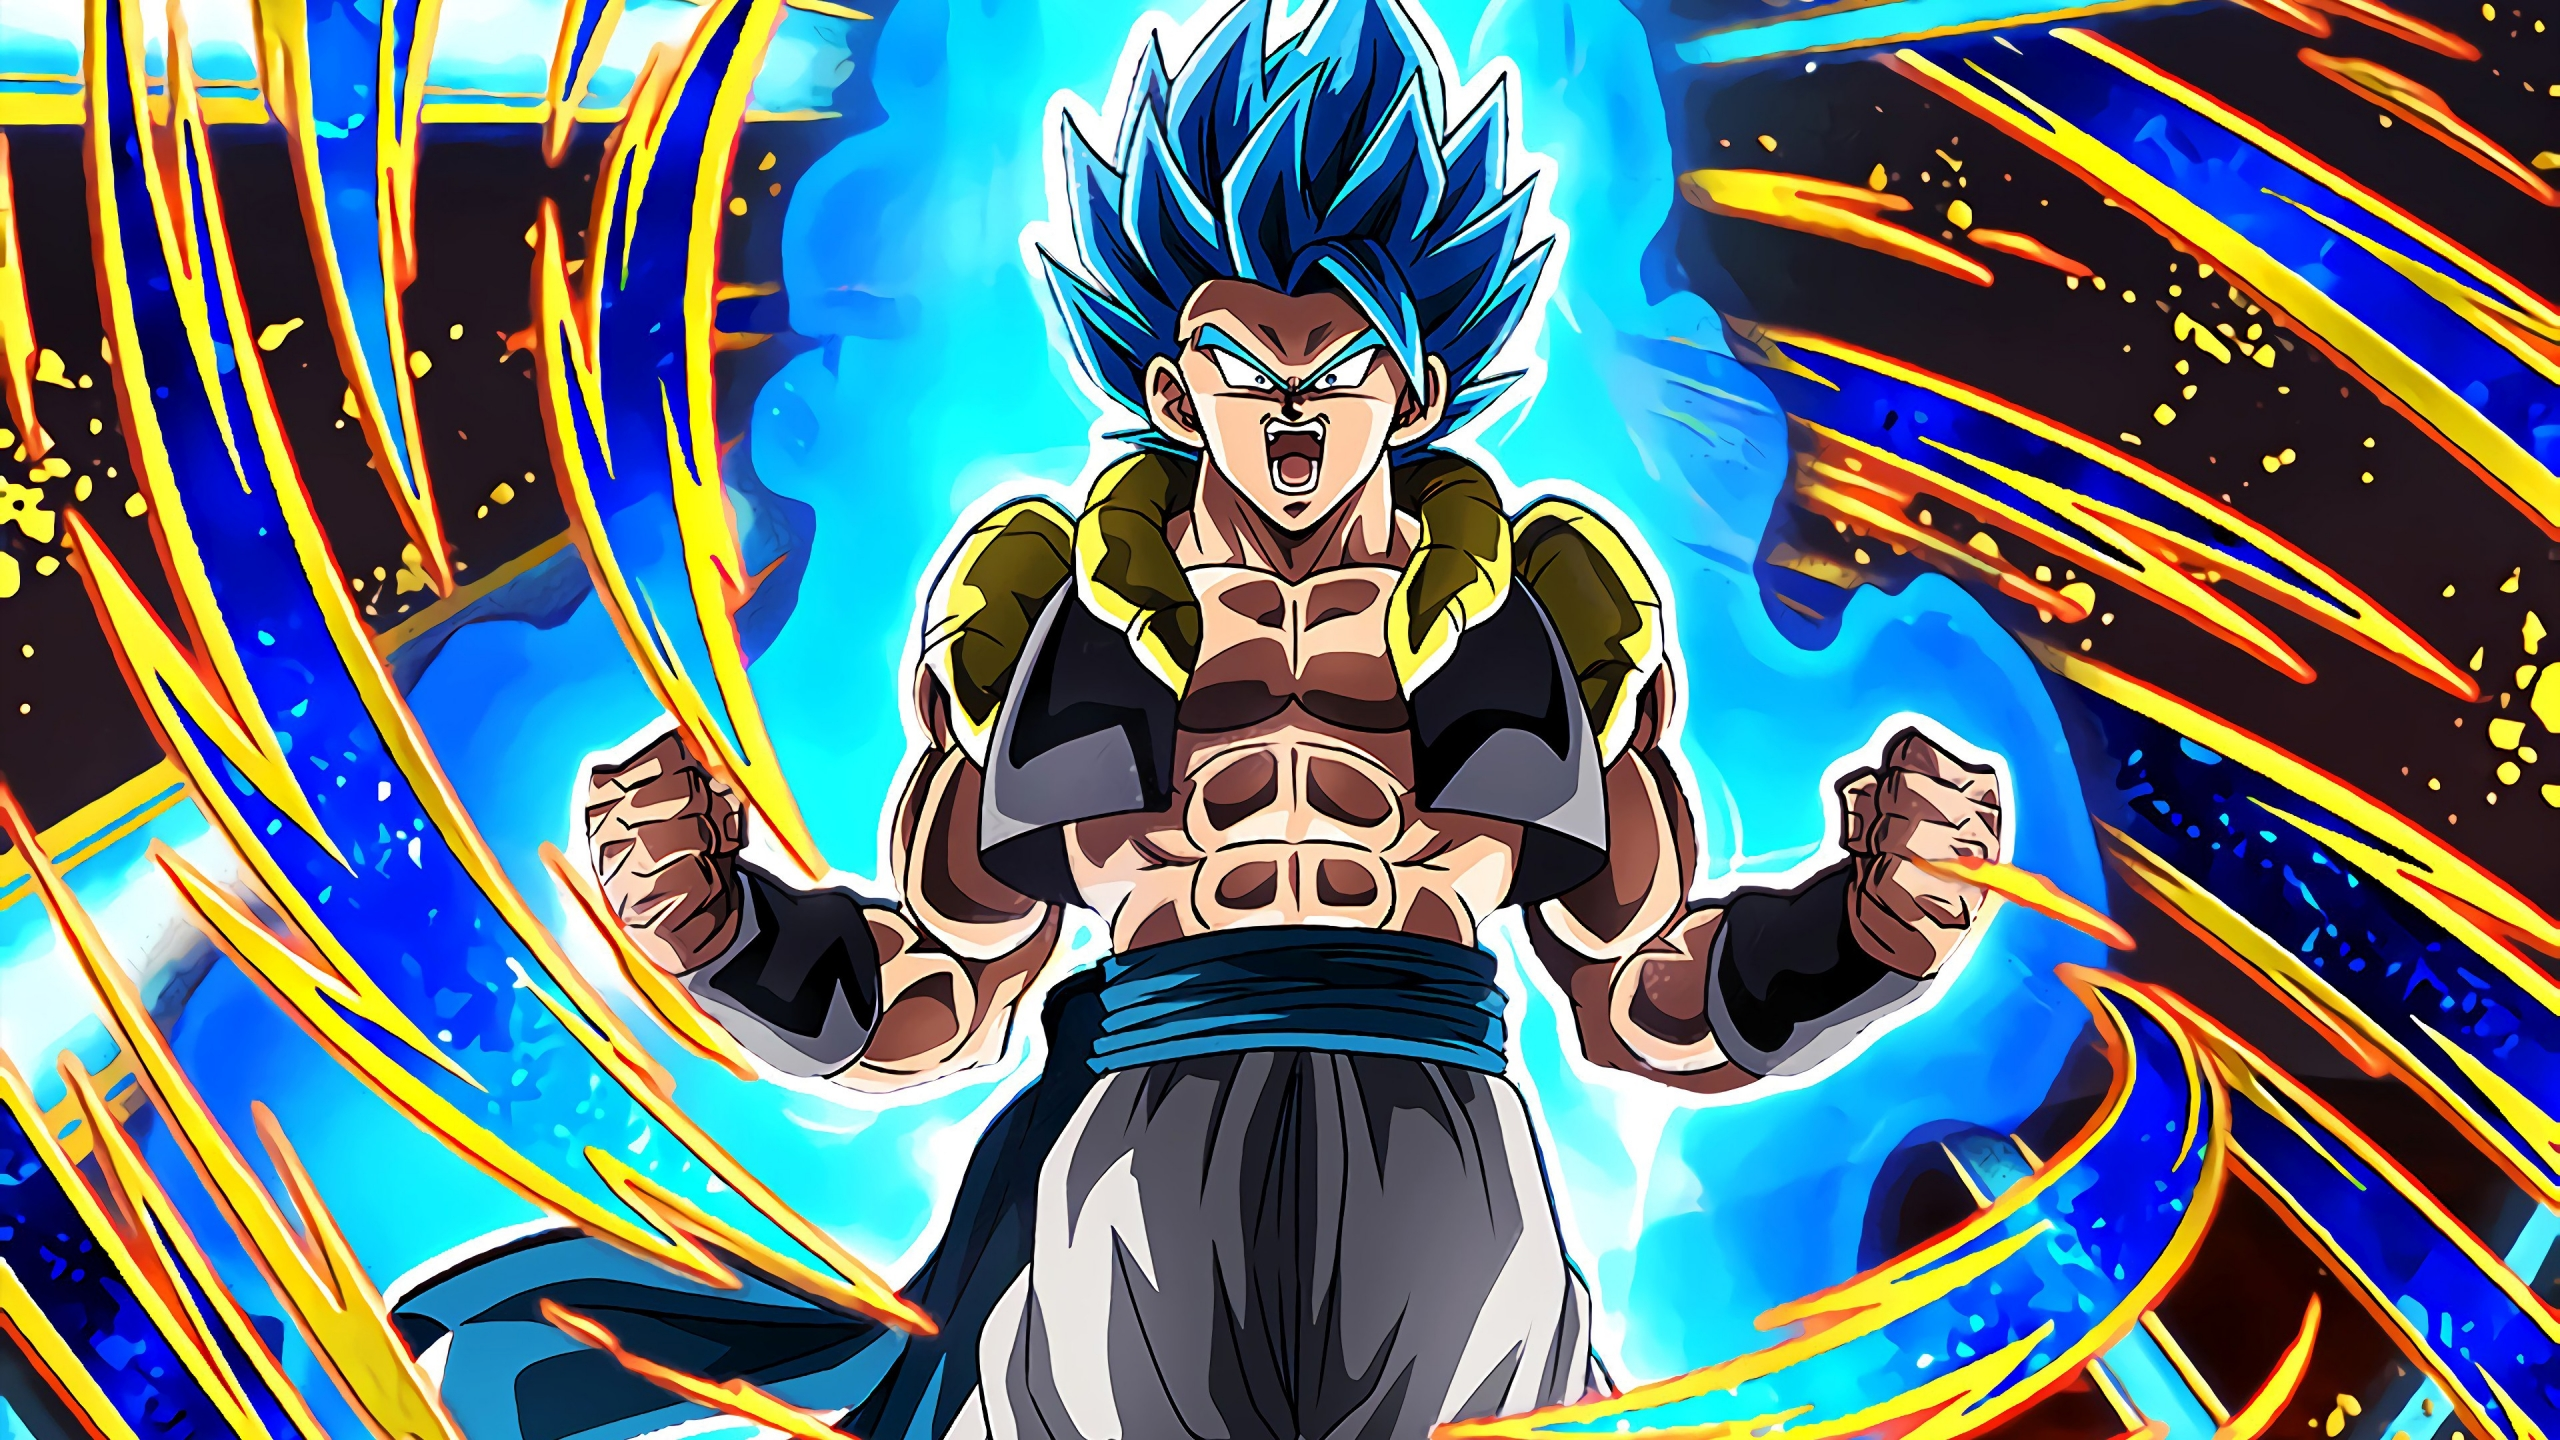 Gogeta Super Saiyan Blue Dragon Ball Super Anime Wallpaper